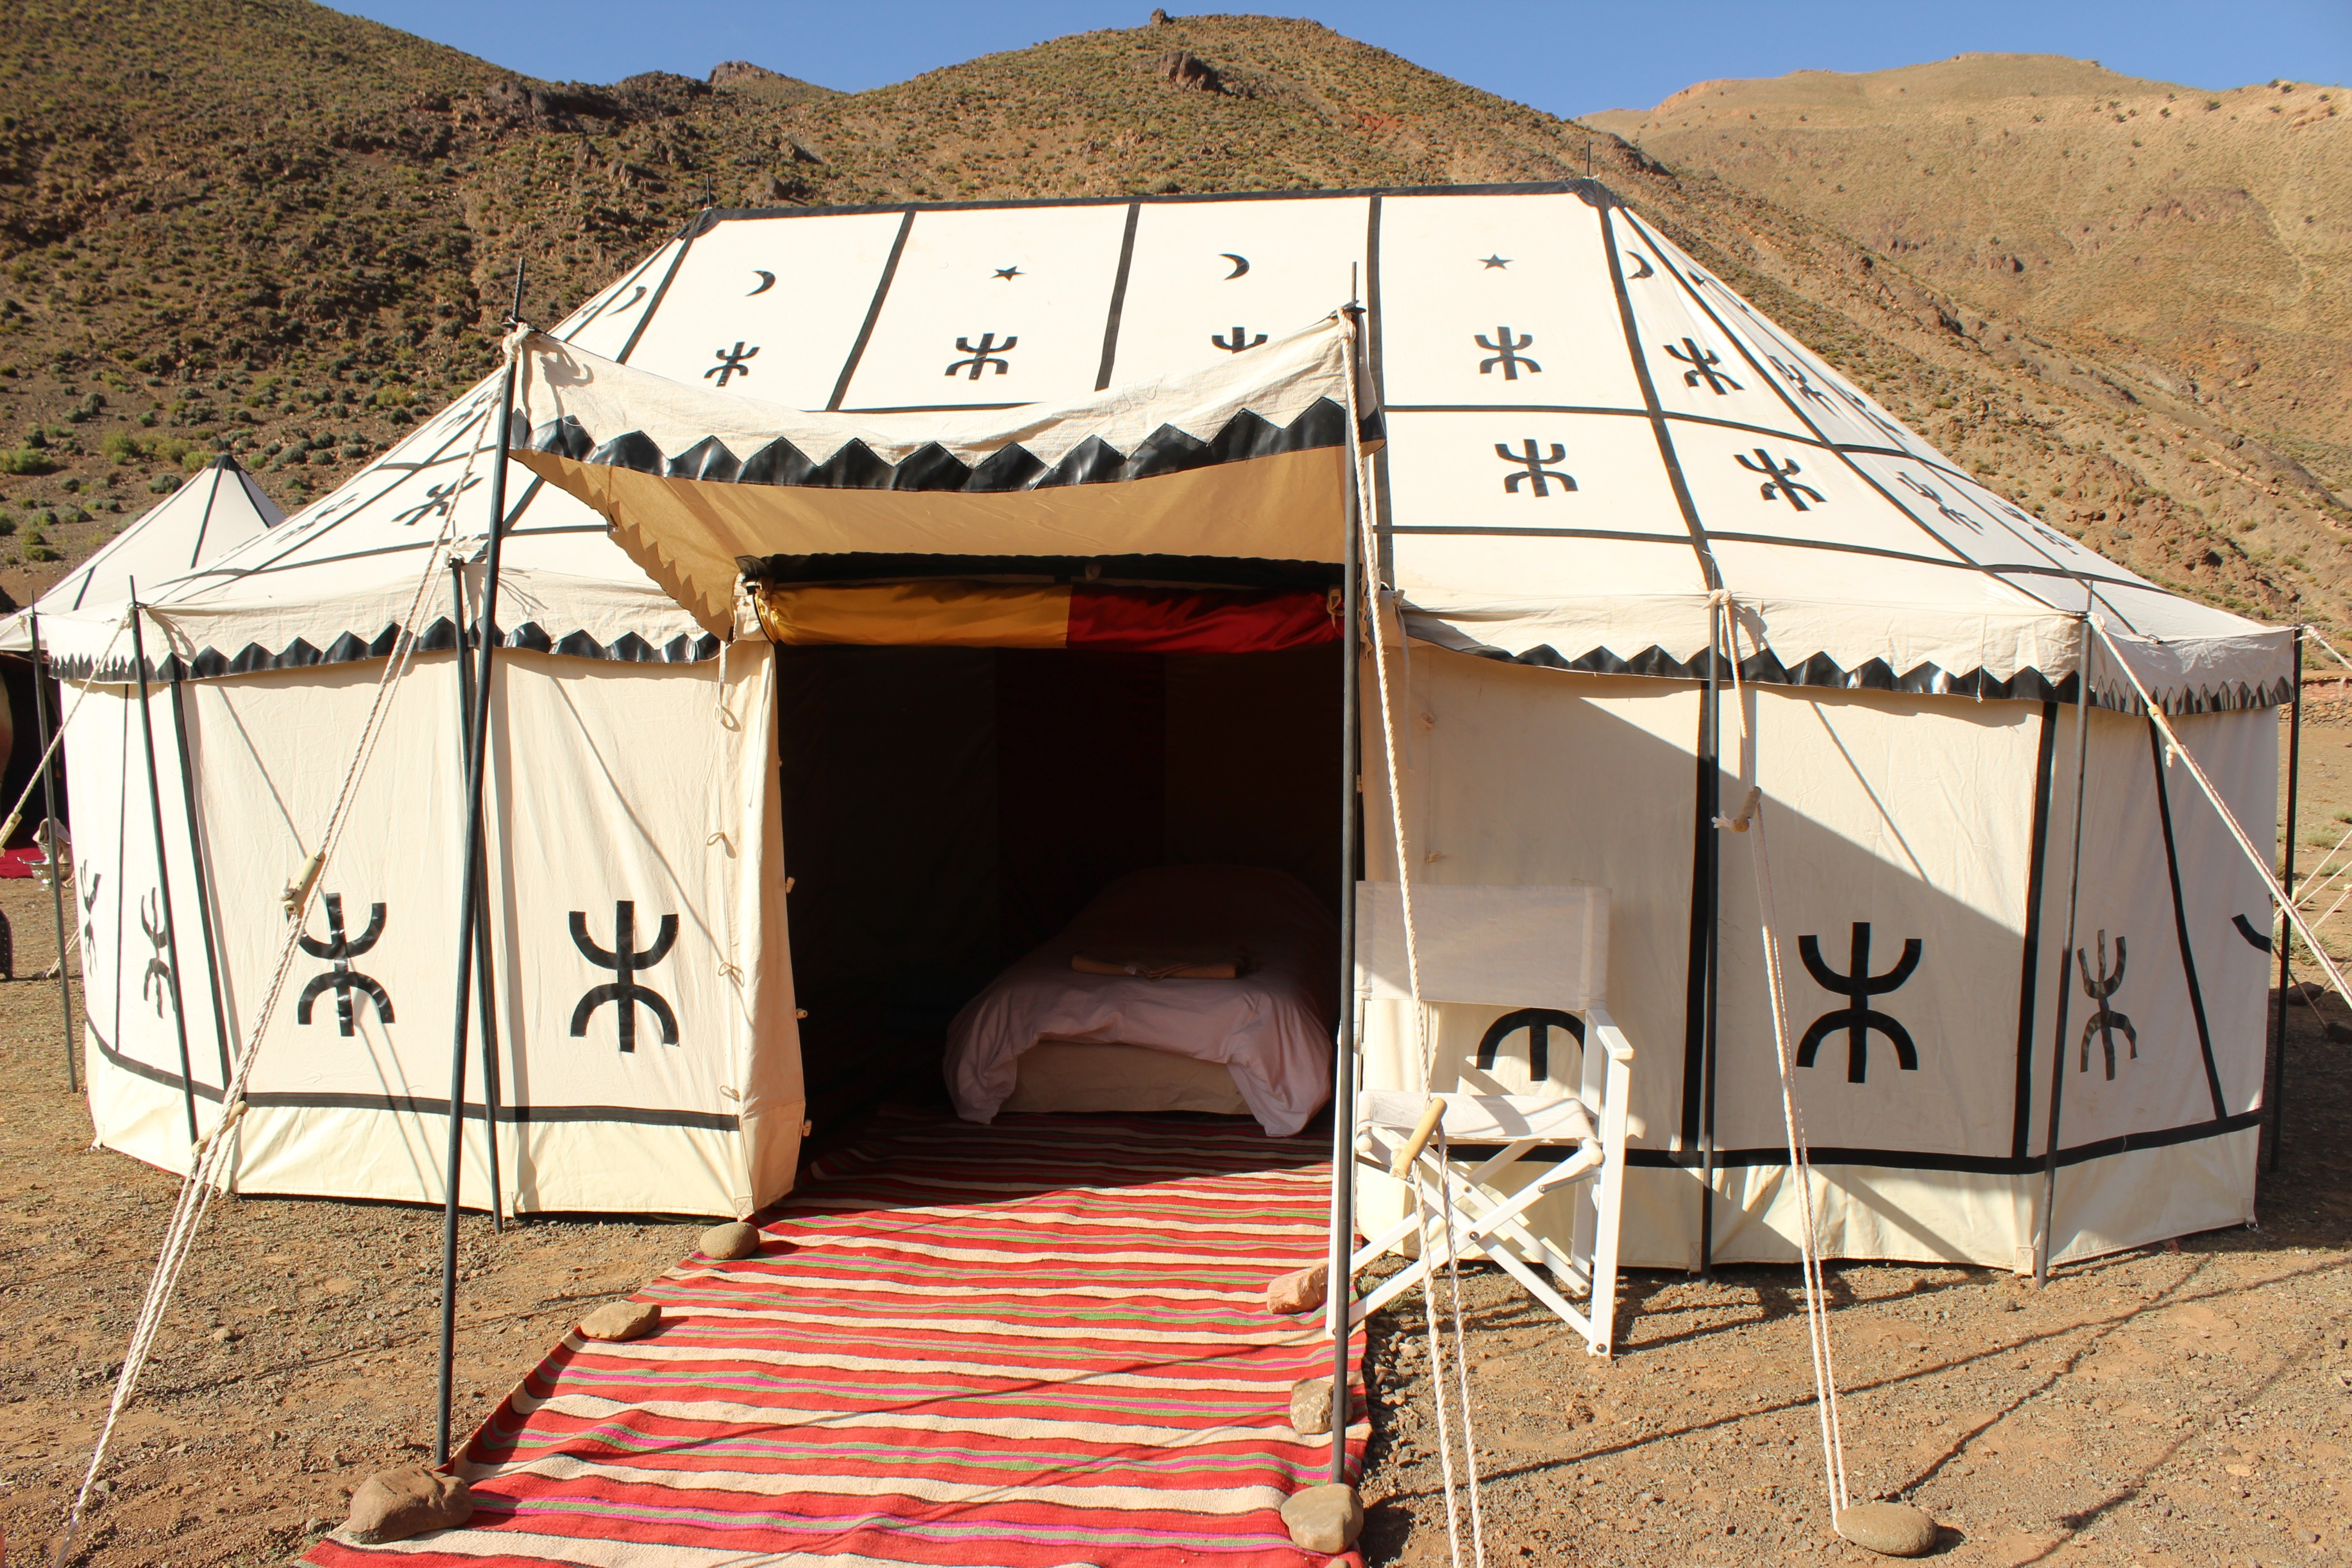 Caidale tent in the Valley of Roses, High Atlas Mountains, Morocco